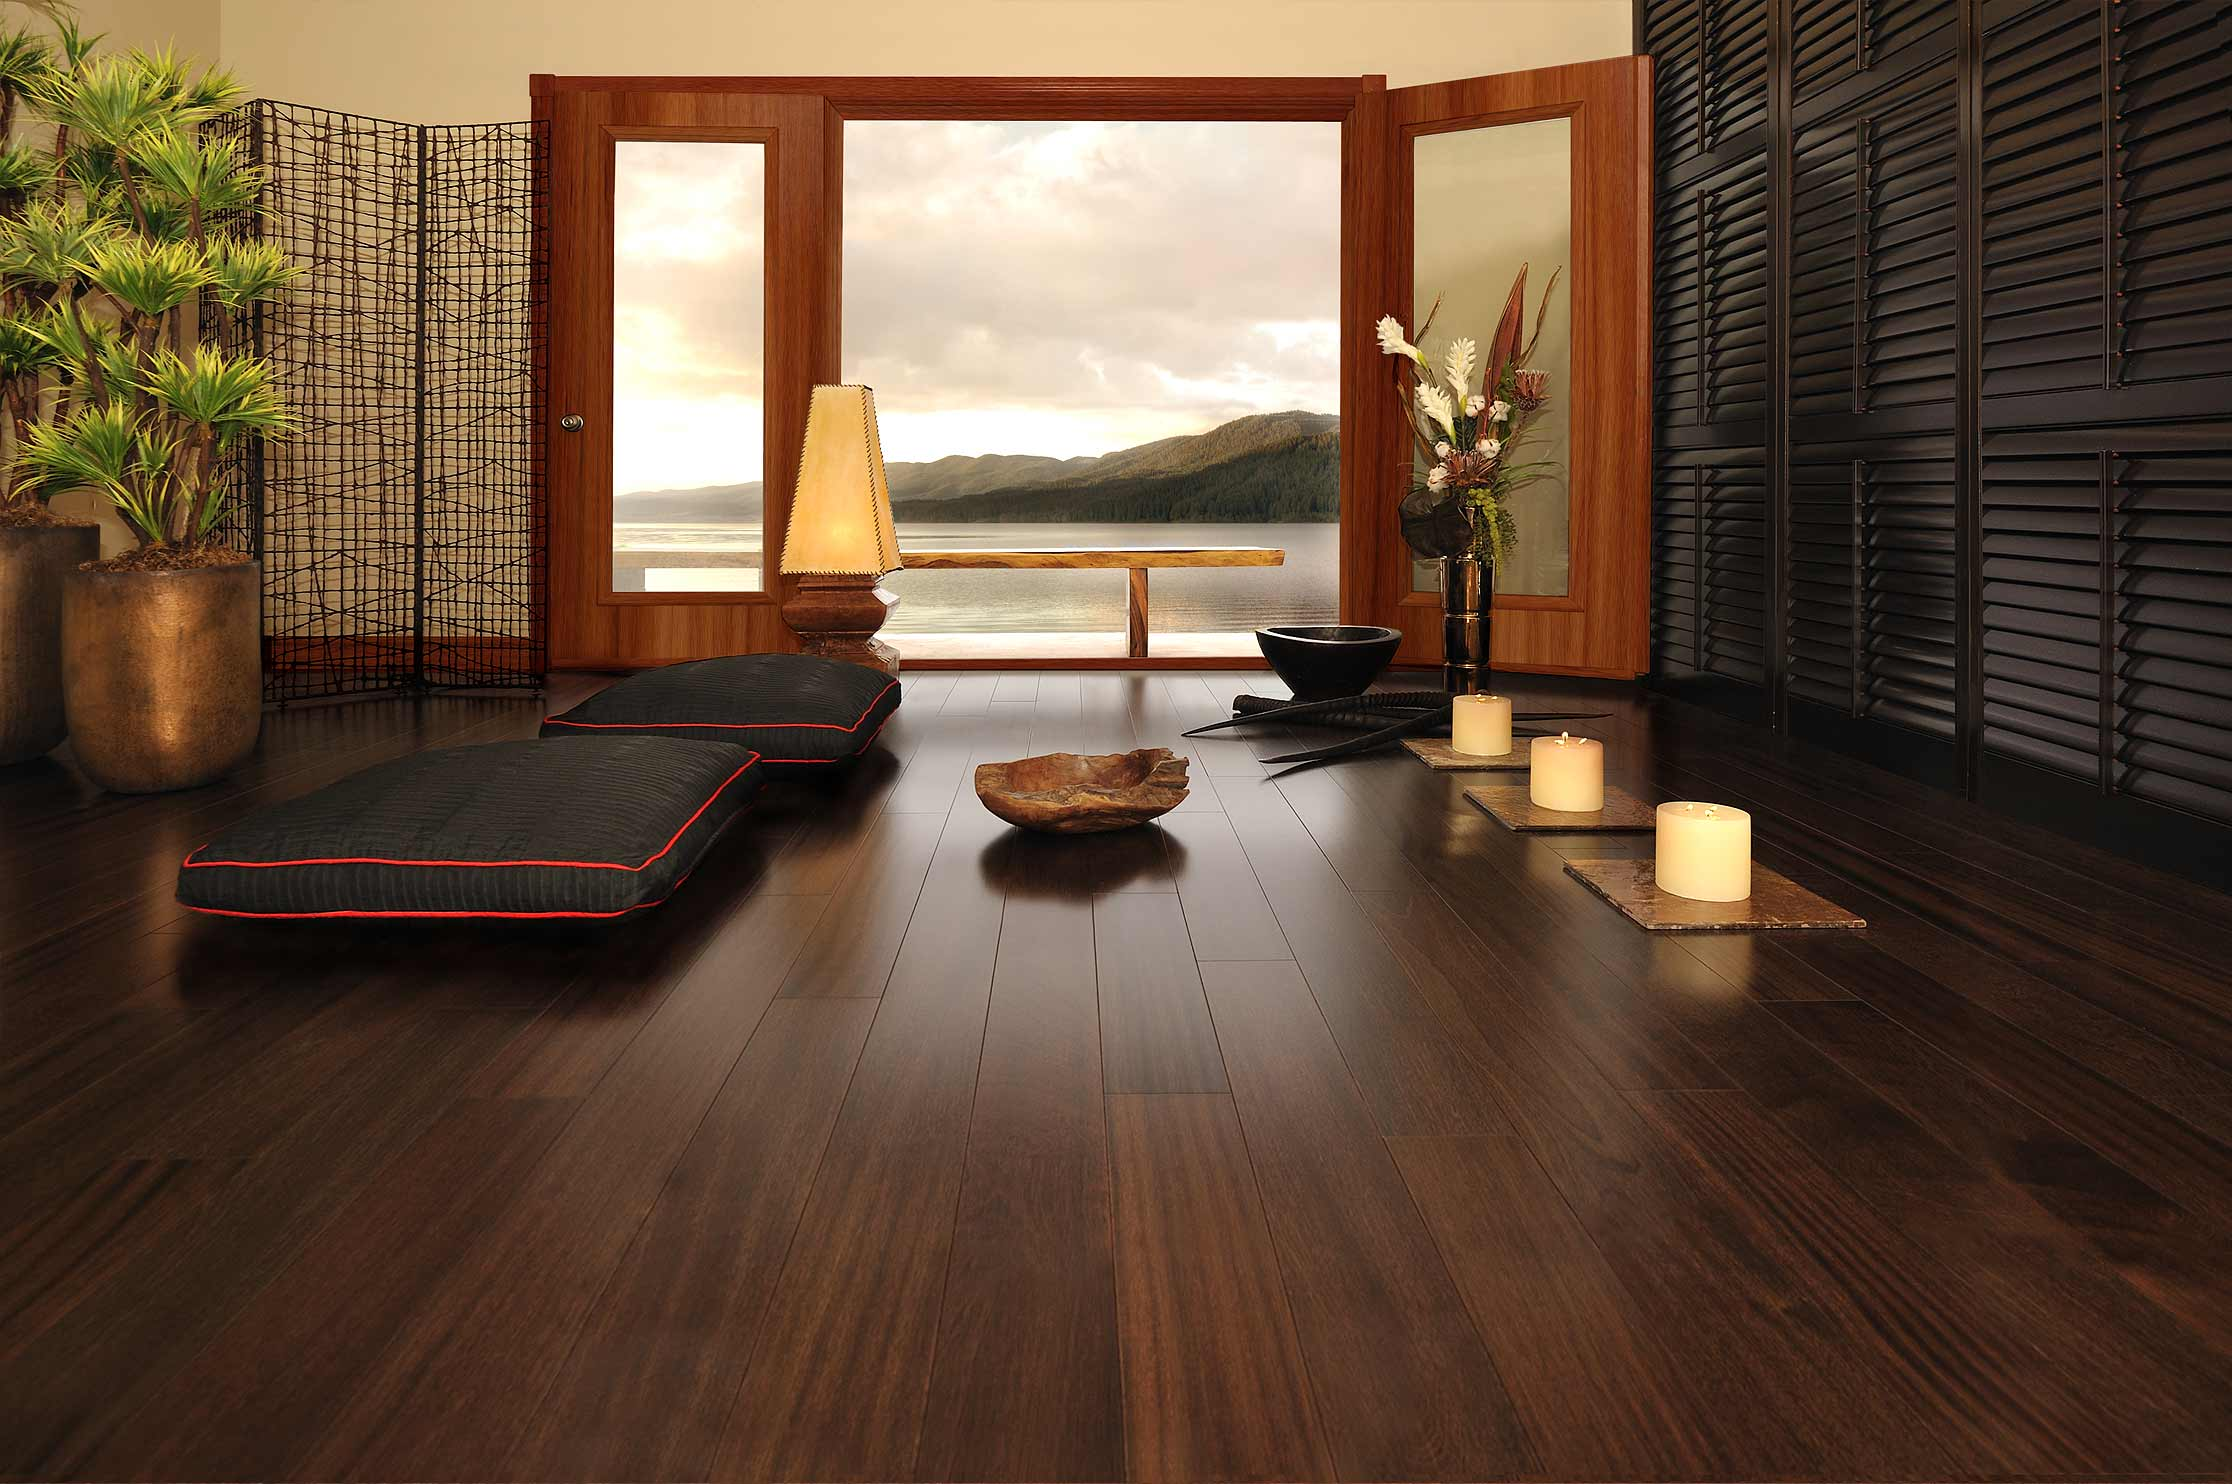 hardwood floors in bedroom home decorating wood flooring lighting RBECPXB